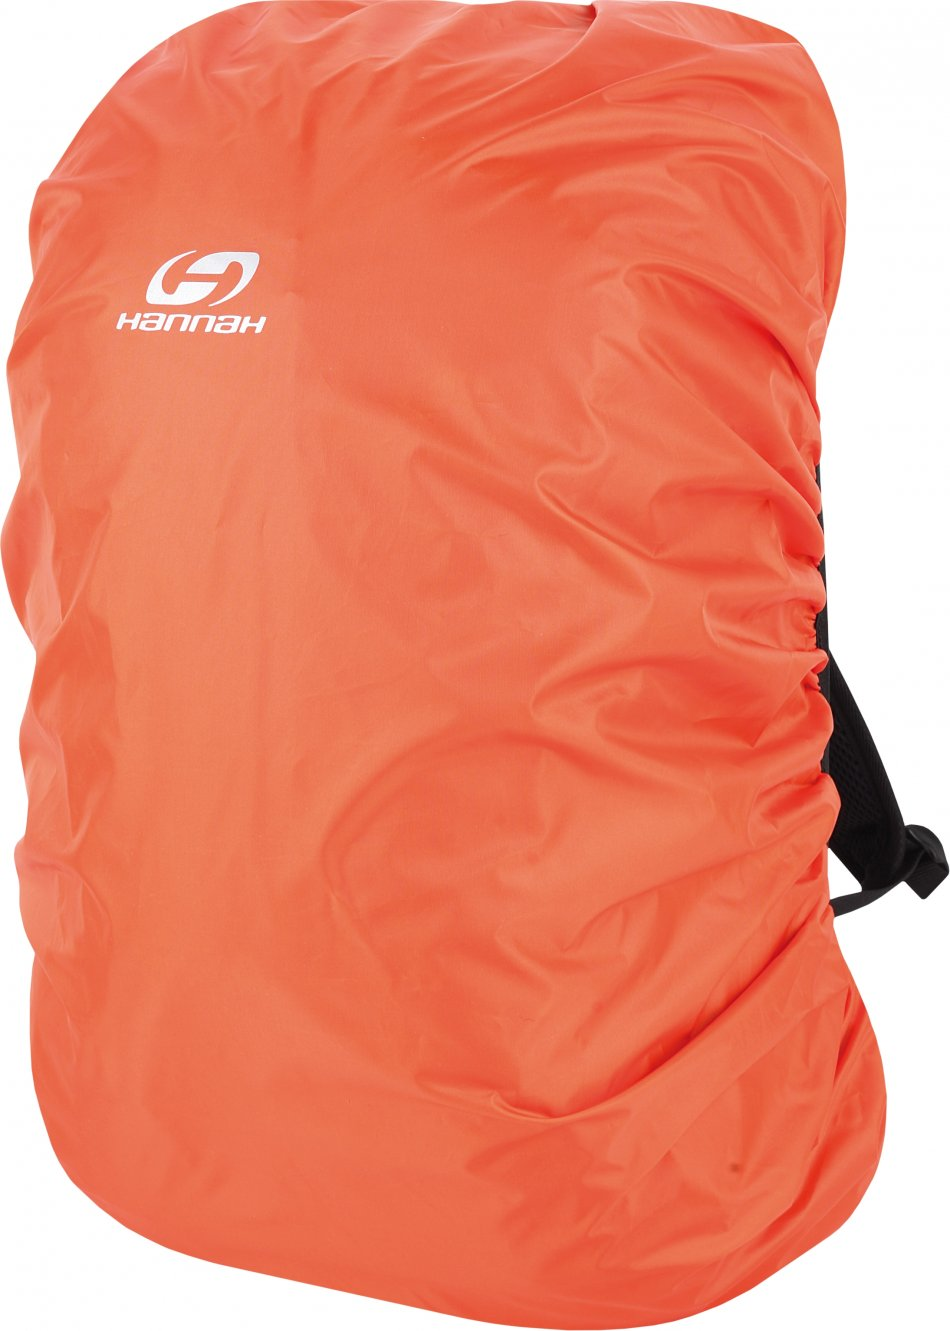 Hannah Raincover Orange 2